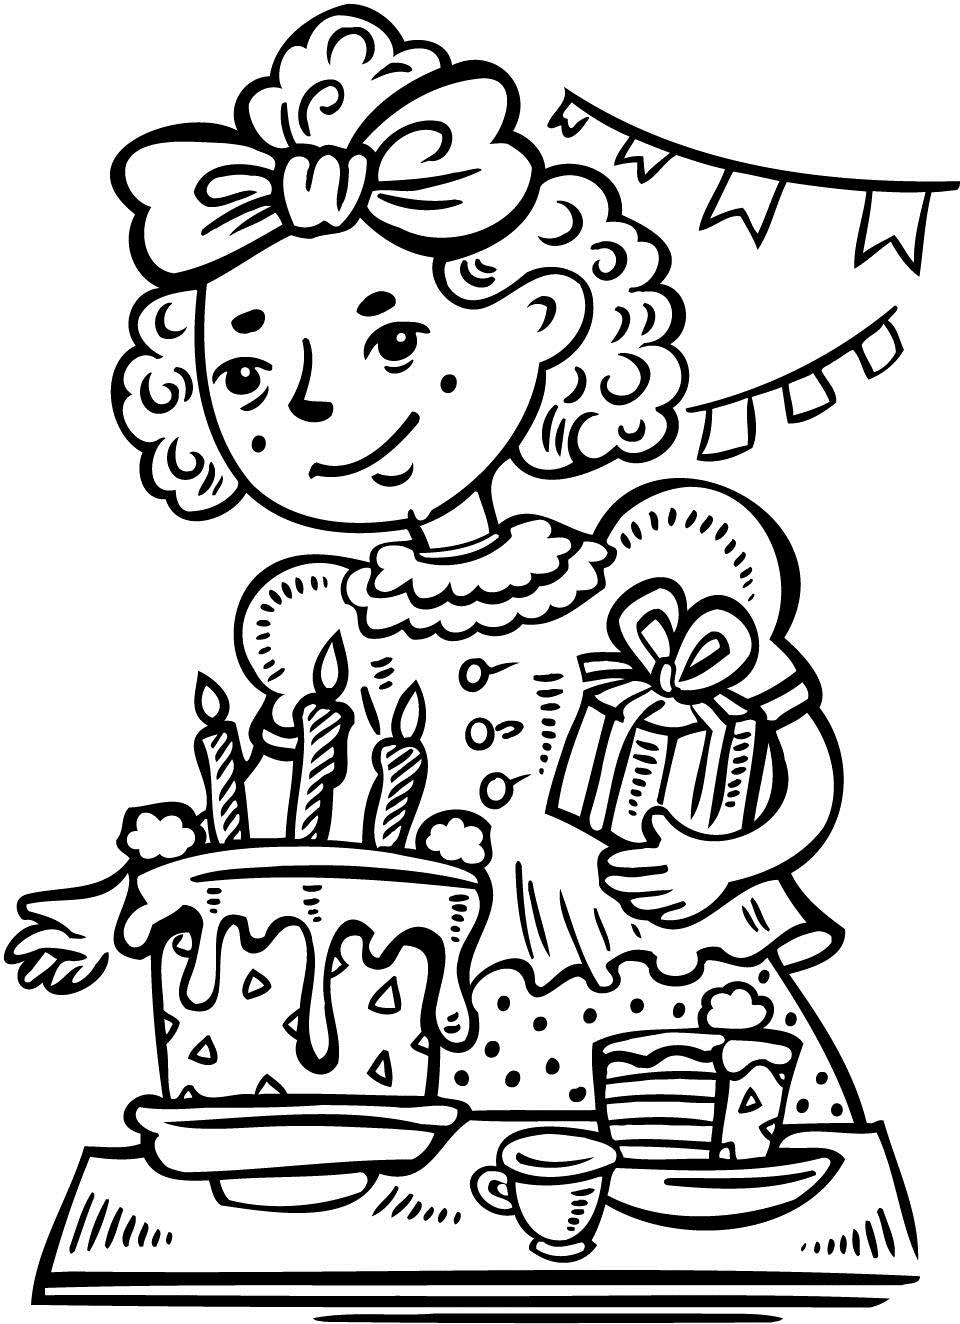 birthday party coloring ; coloring-sheet-of-a-girls-birthday-party-for-kids